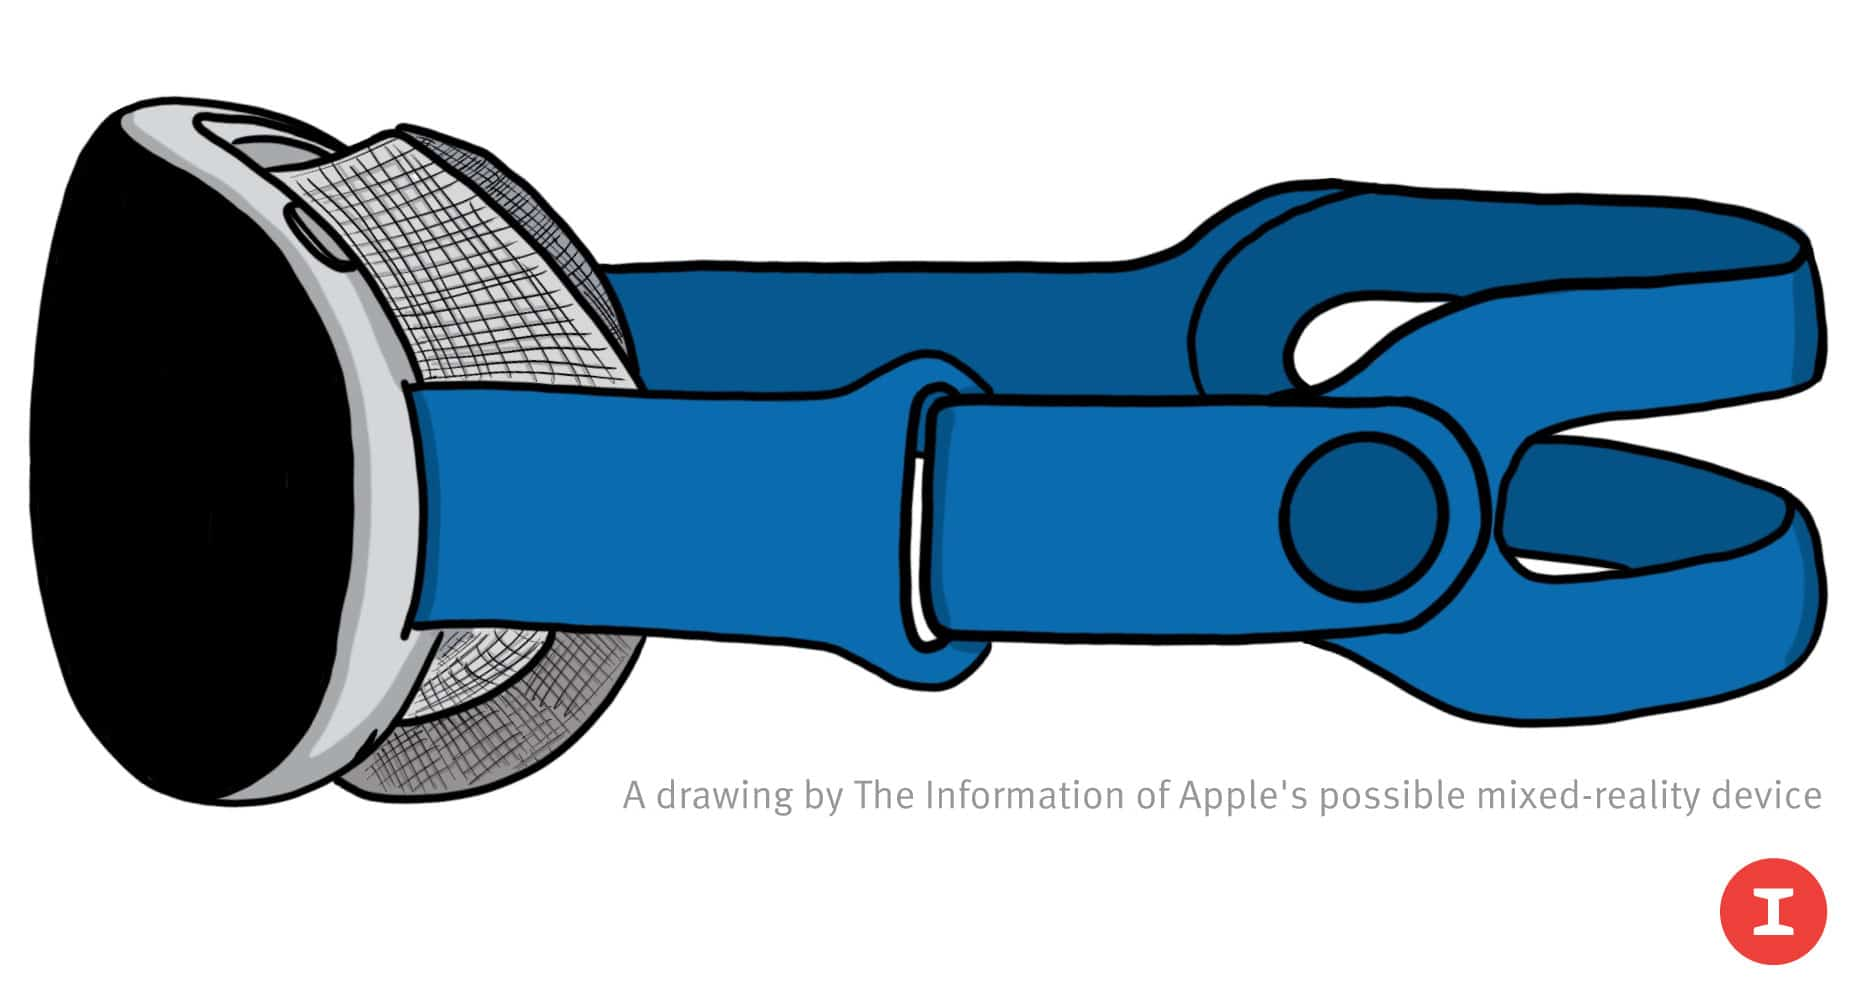 Report: Apple AR-VR Headset To Launch Second Half Of 2022